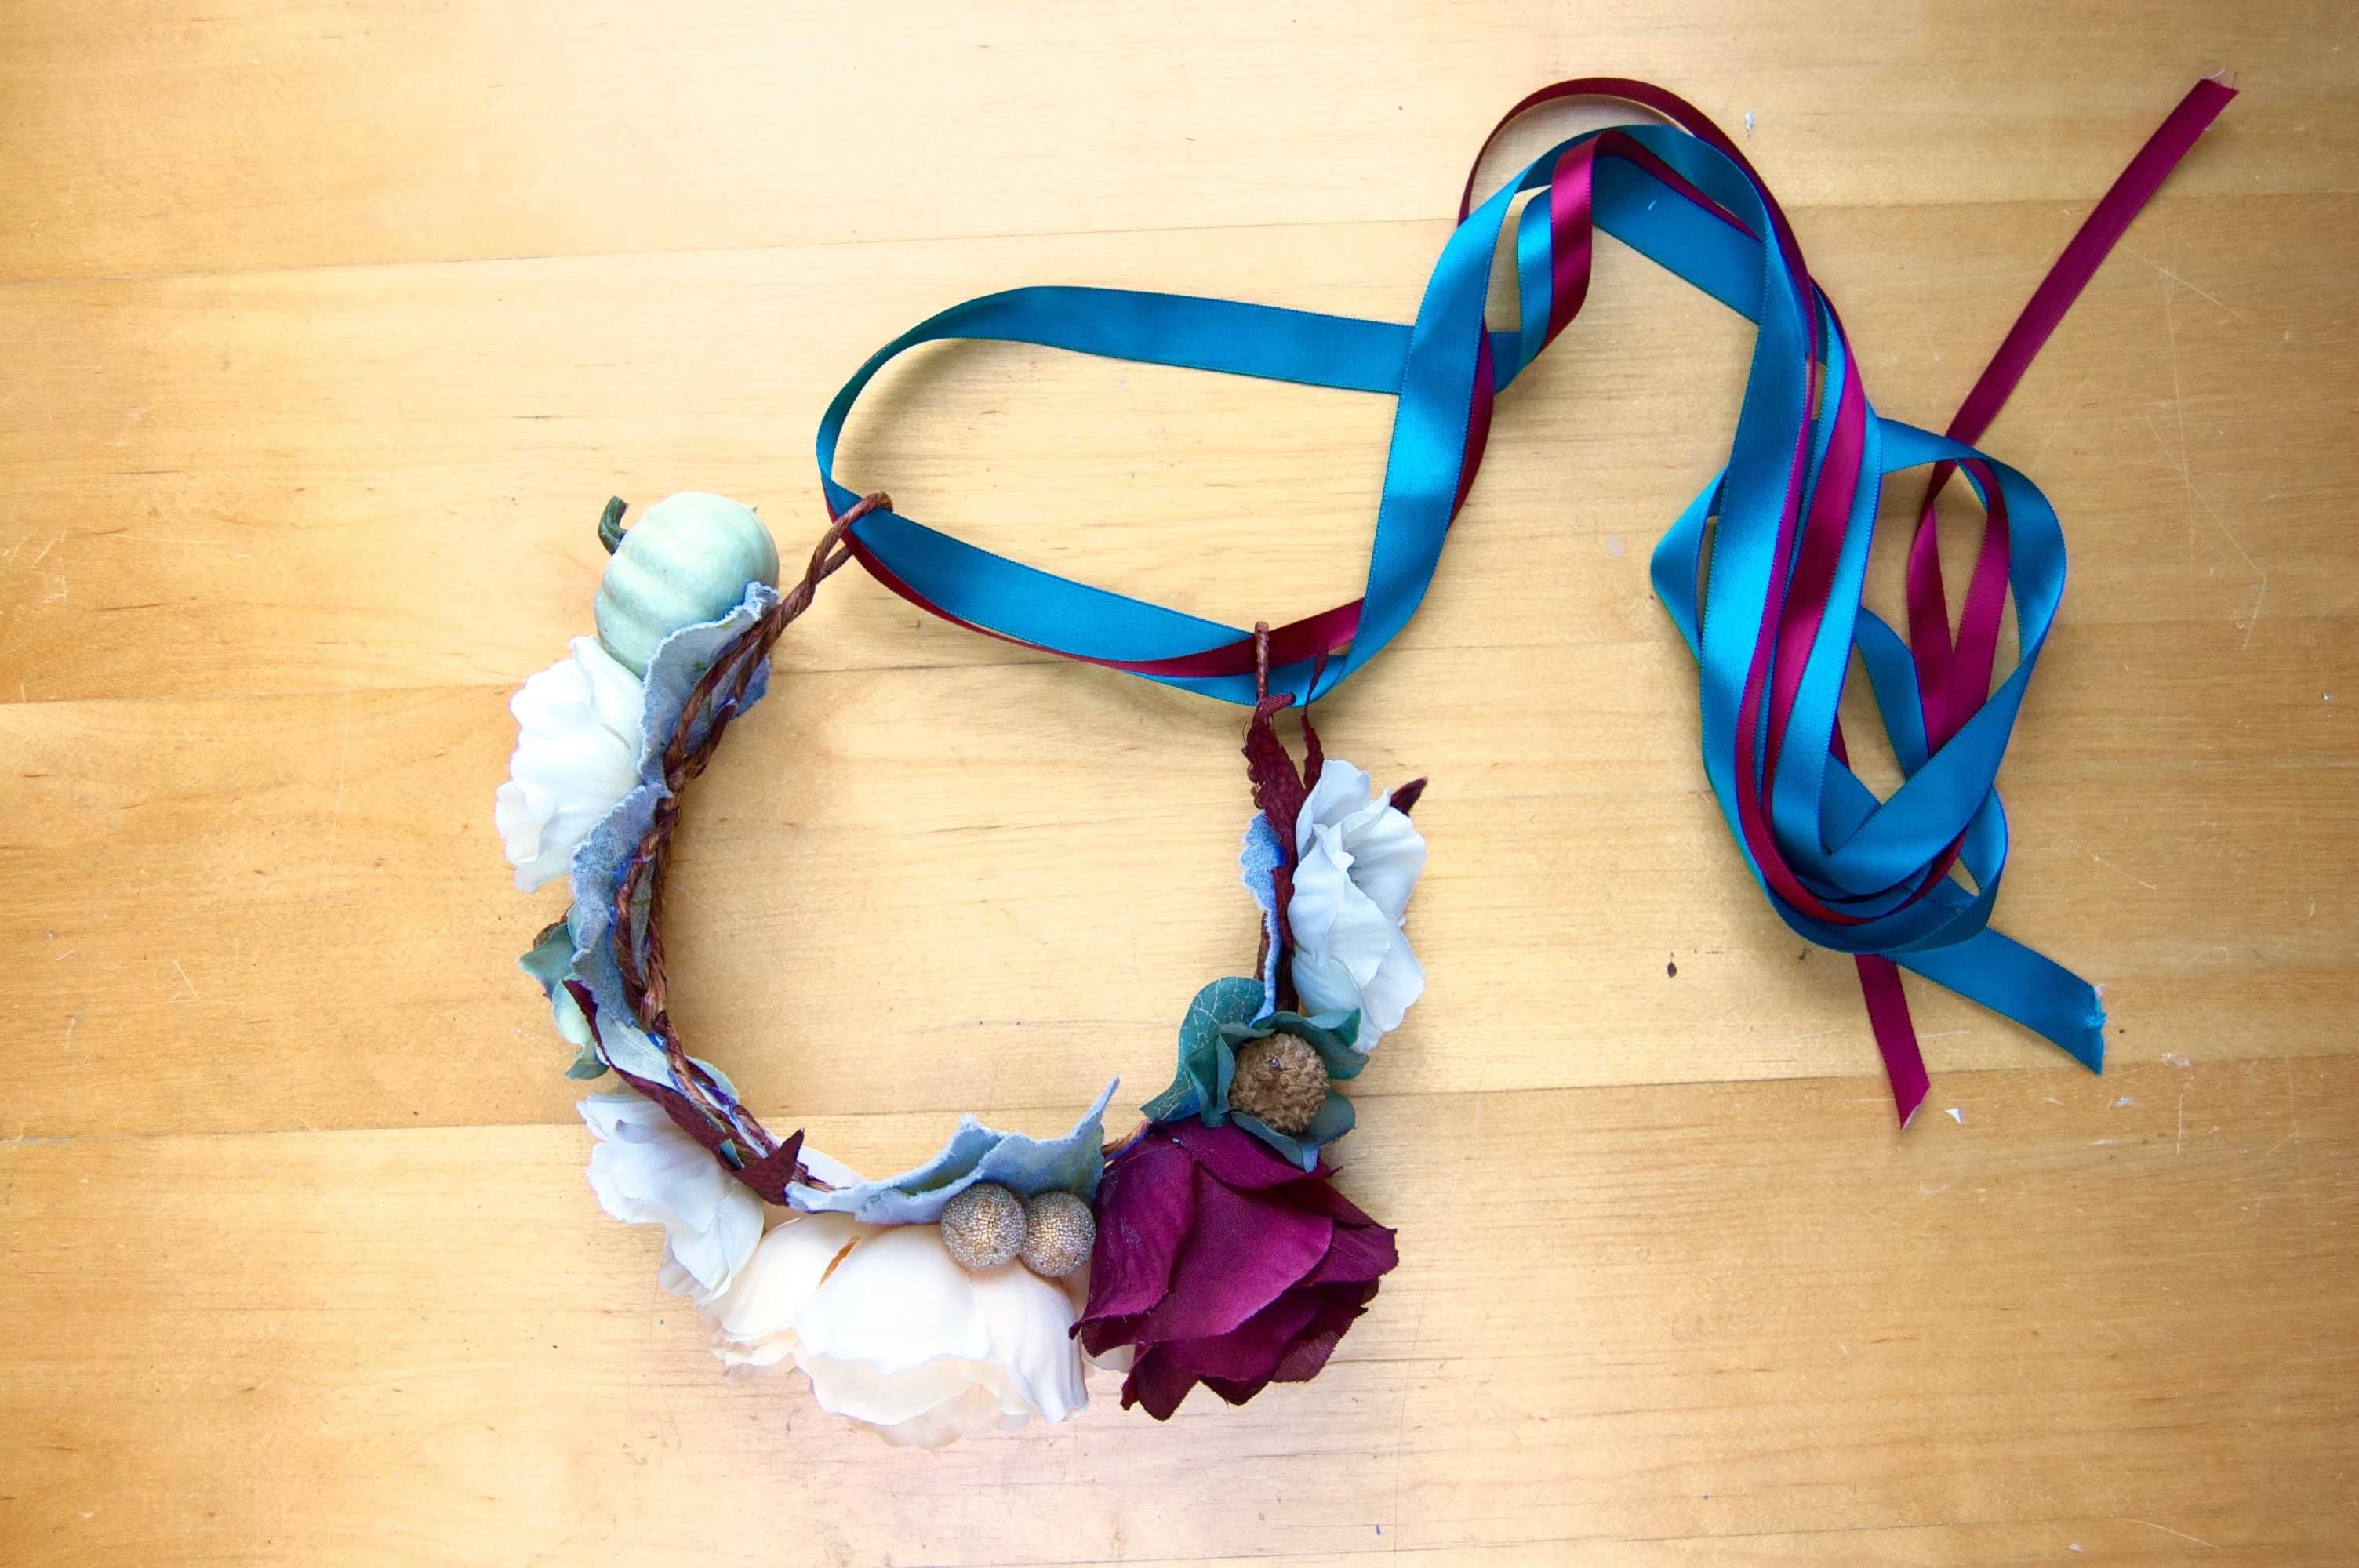 Flower crown diy tutorial how to make your own flower crowns flower crown diy tutorial how to make your own flower crowns izmirmasajfo Images